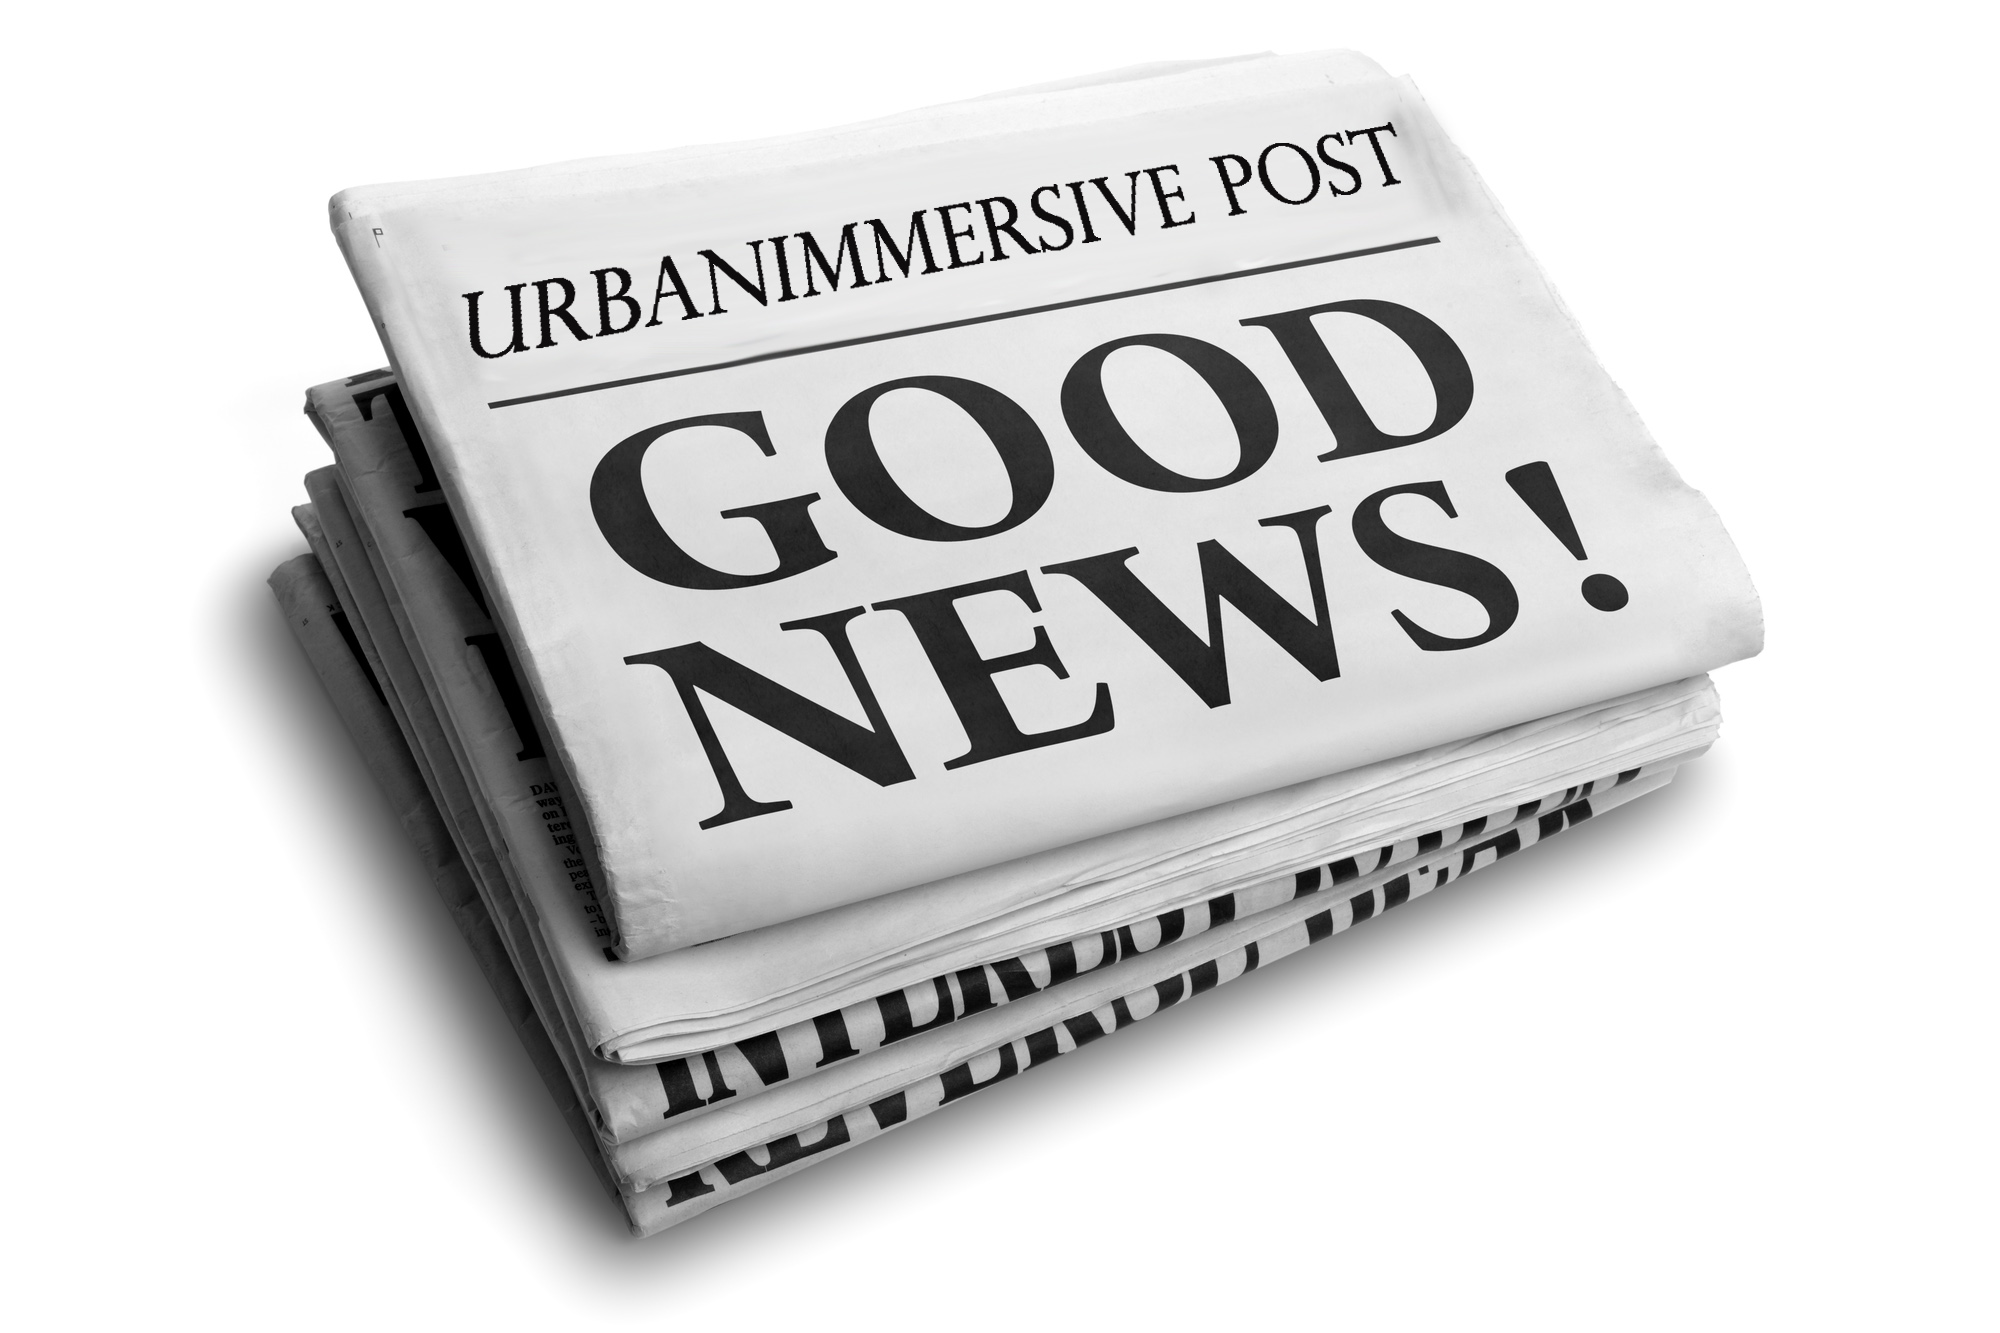 Urbanimmersive Announces the Signing of a Partnership Agreement with PhotoUp, an Industry Leader in Real Estate Photo Editing Services